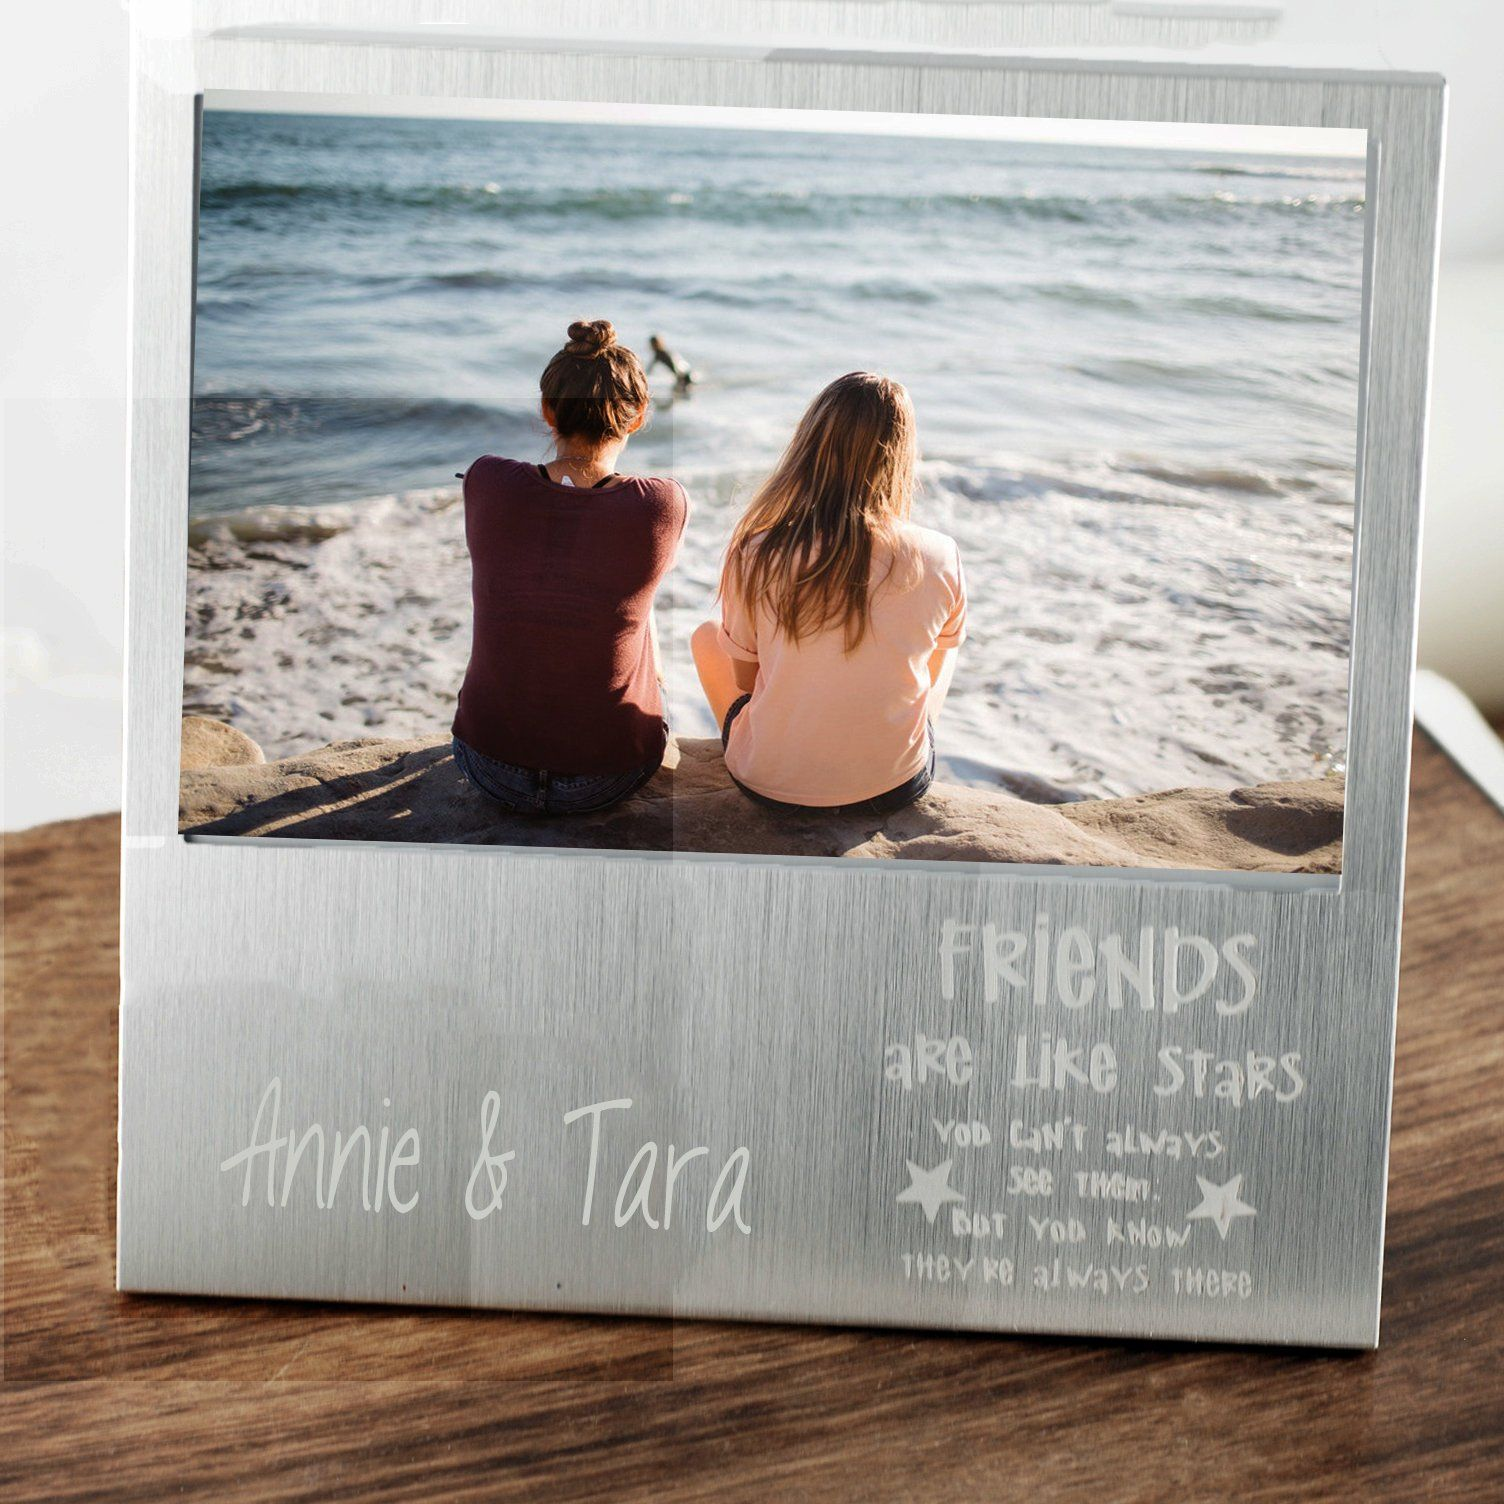 Best friend birthday gifts personalized picture frame